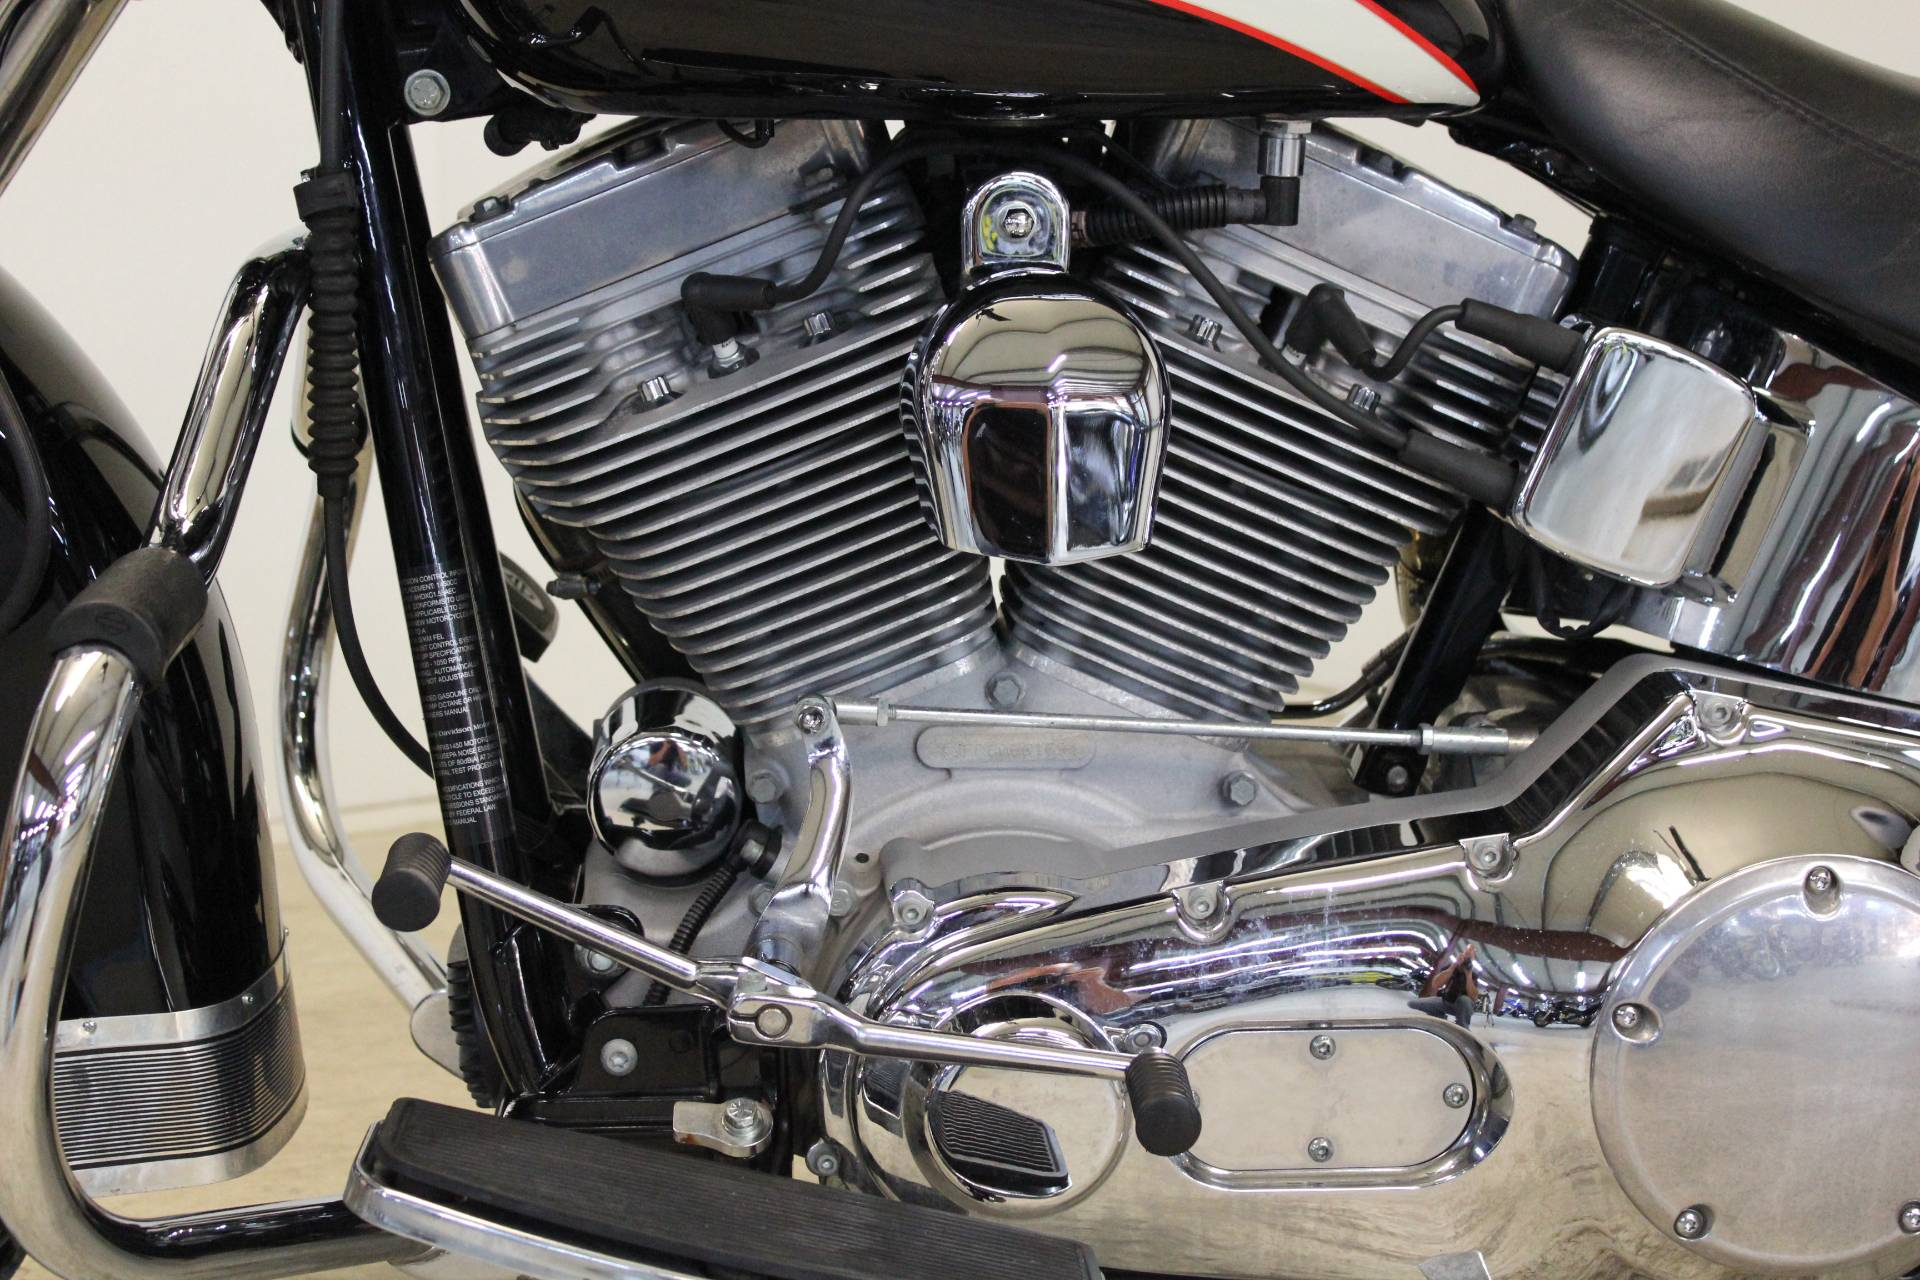 2006 Harley-Davidson Heritage Softail® in Pittsfield, Massachusetts - Photo 13